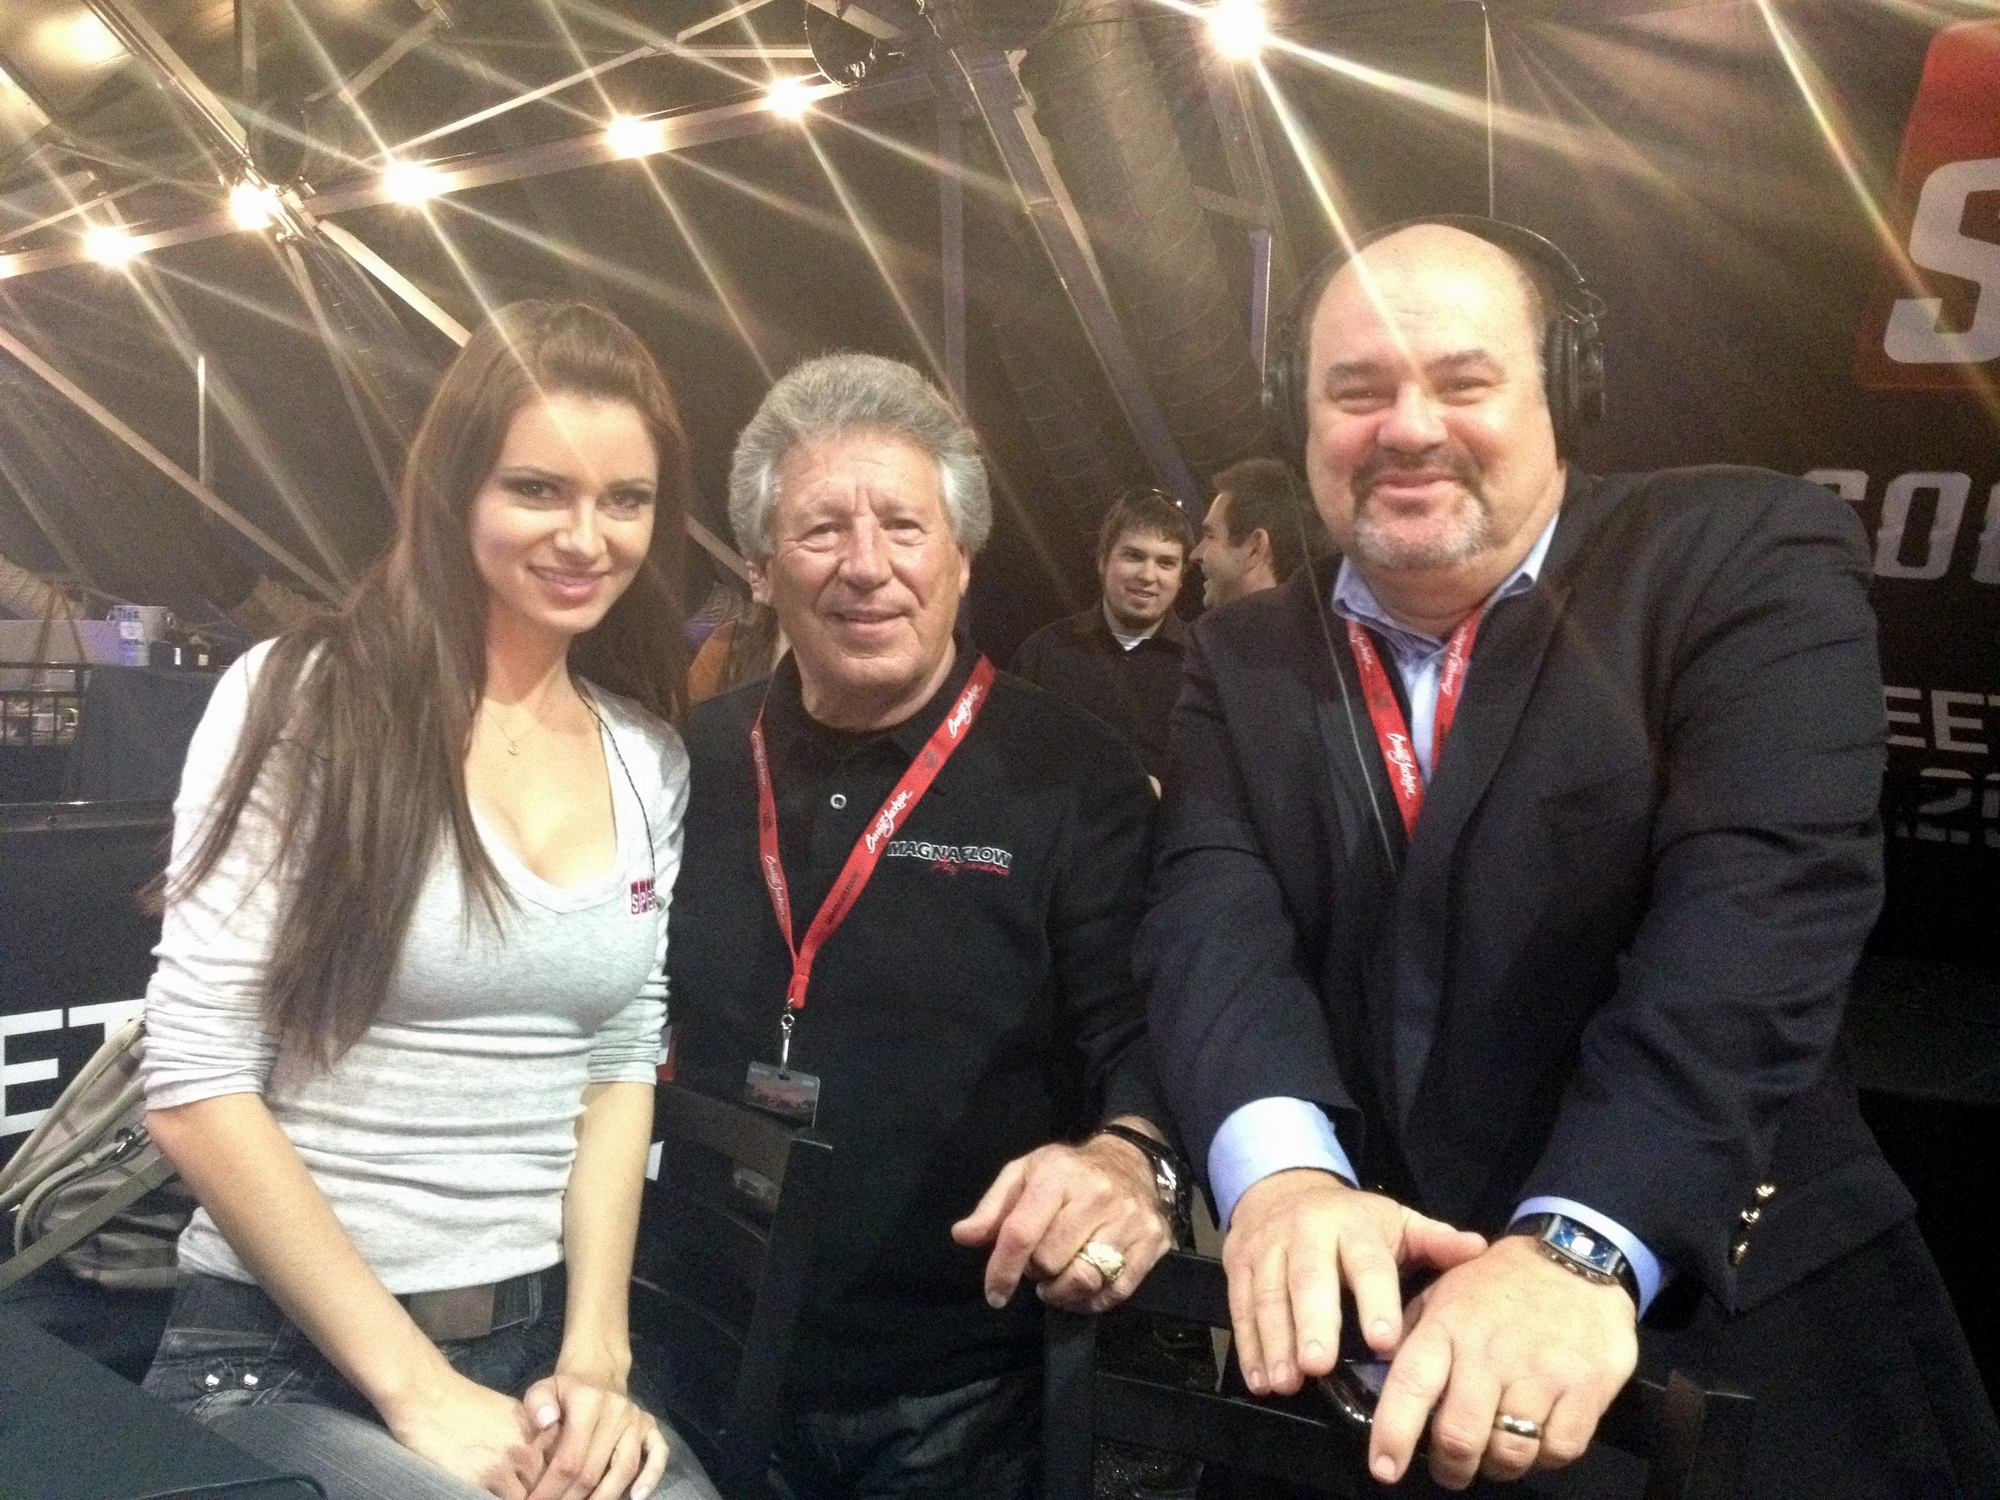 Hangin with cool peeps at Barrett-Jackson